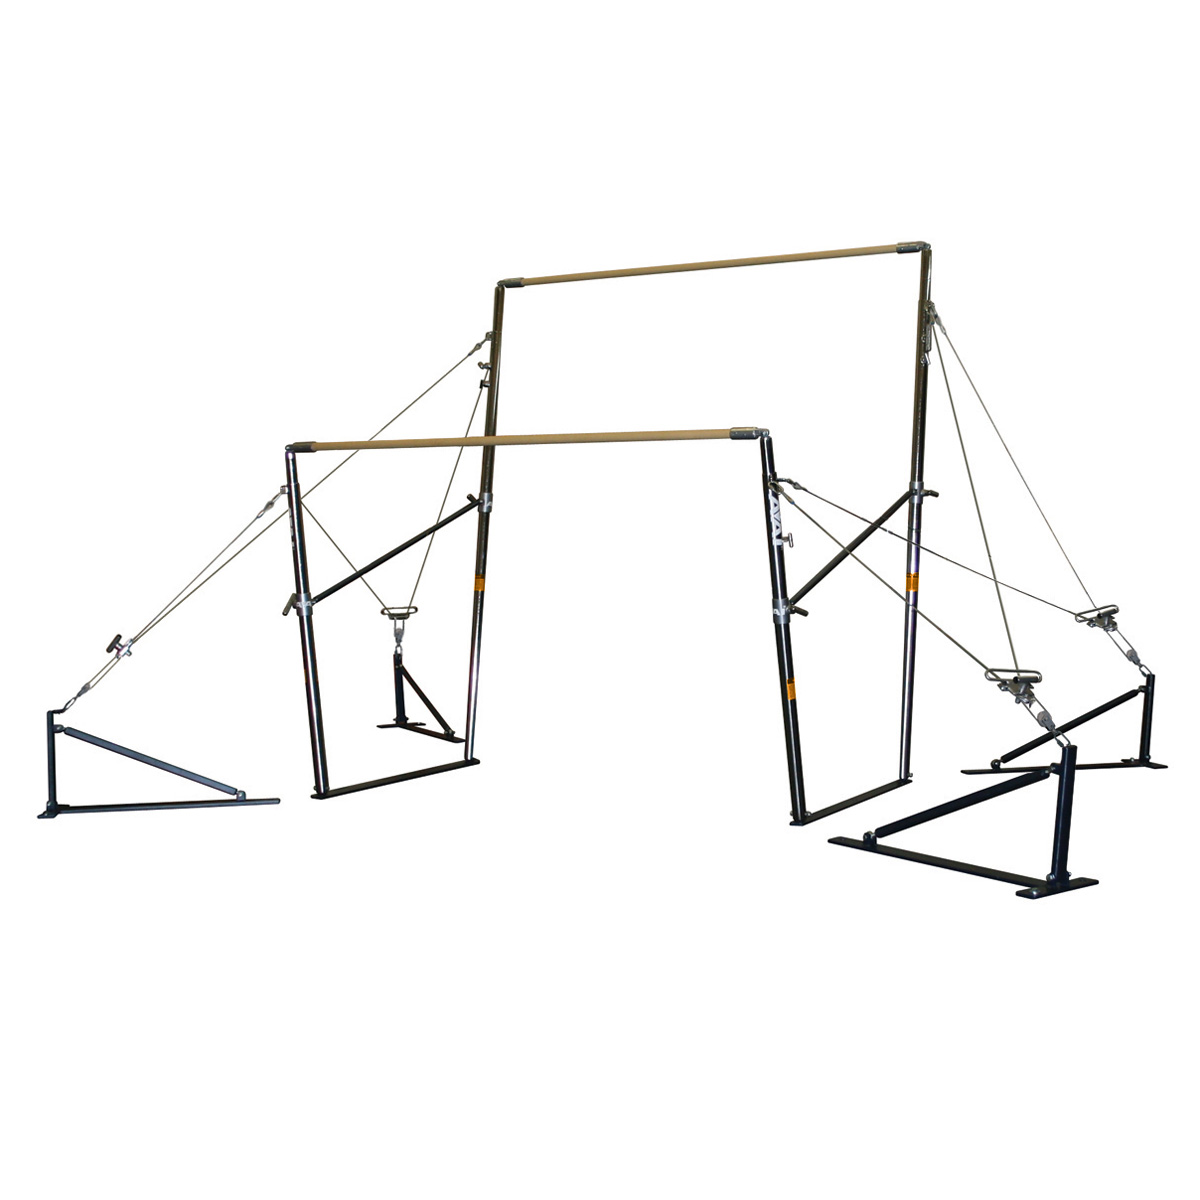 aai elite gymnastics uneven bars with srs system - mancino mats